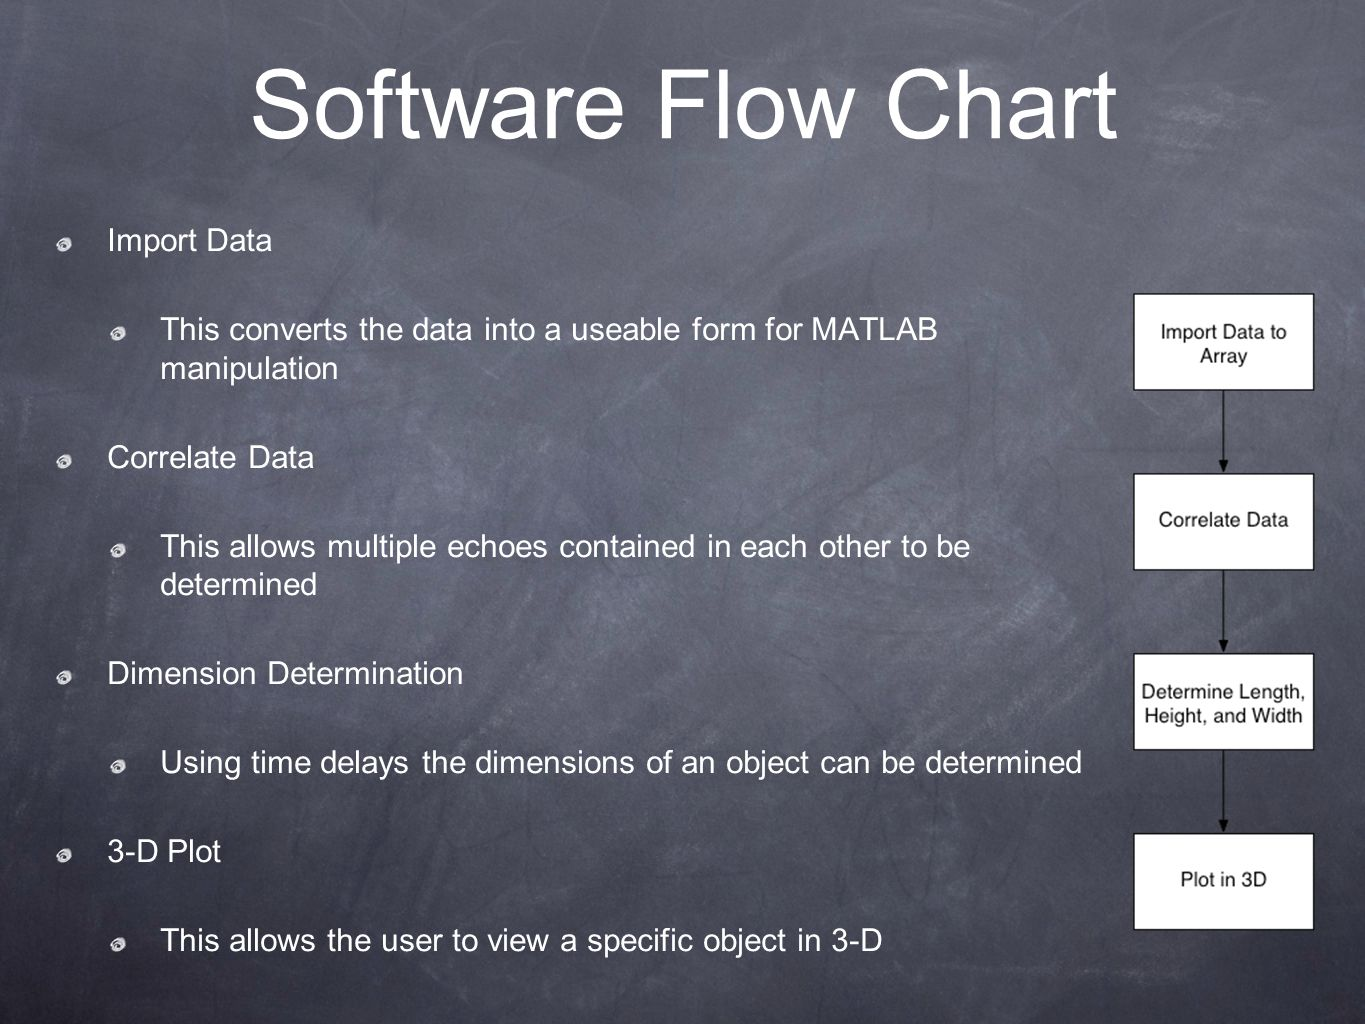 Software Flow Chart Import Data This converts the data into a useable form for MATLAB manipulation Correlate Data This allows multiple echoes contained in each other to be determined Dimension Determination Using time delays the dimensions of an object can be determined 3-D Plot This allows the user to view a specific object in 3-D